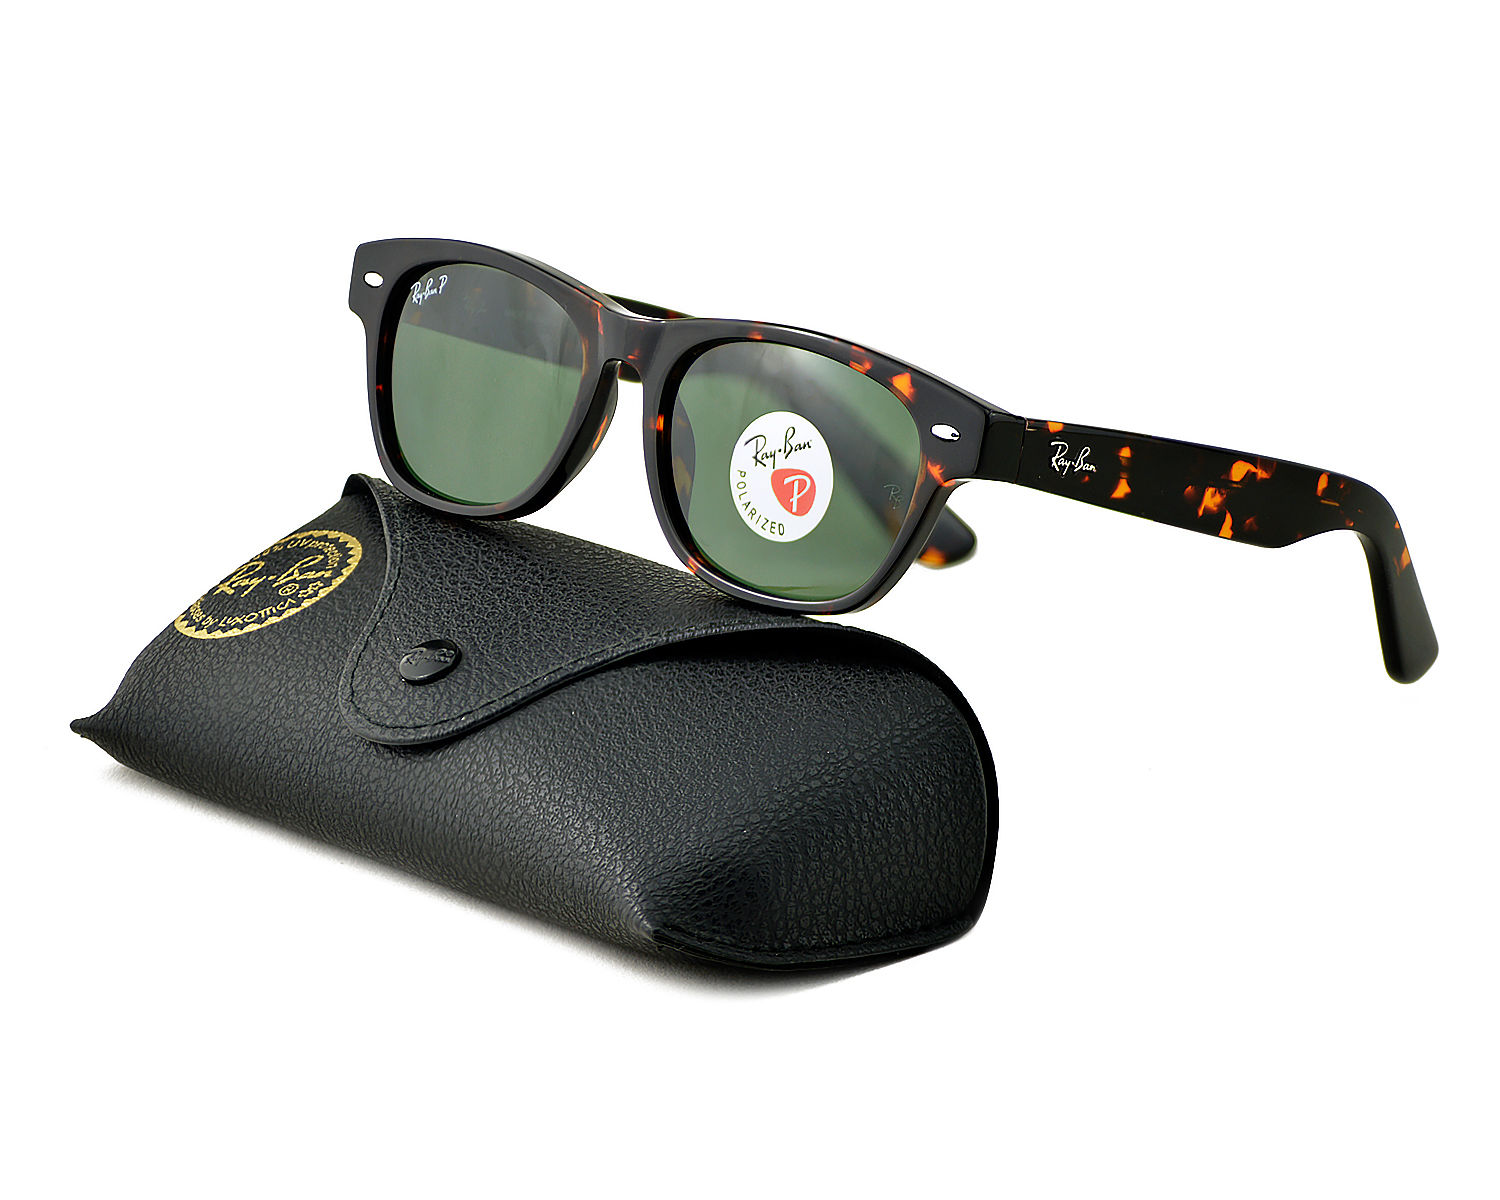 95c91992d Ray-Ban RB2132 NEW WAYFARER CLASSIC 902/58 Tortoise, Green Classic G-15  Polarized Unisex Sunglasses 52mm